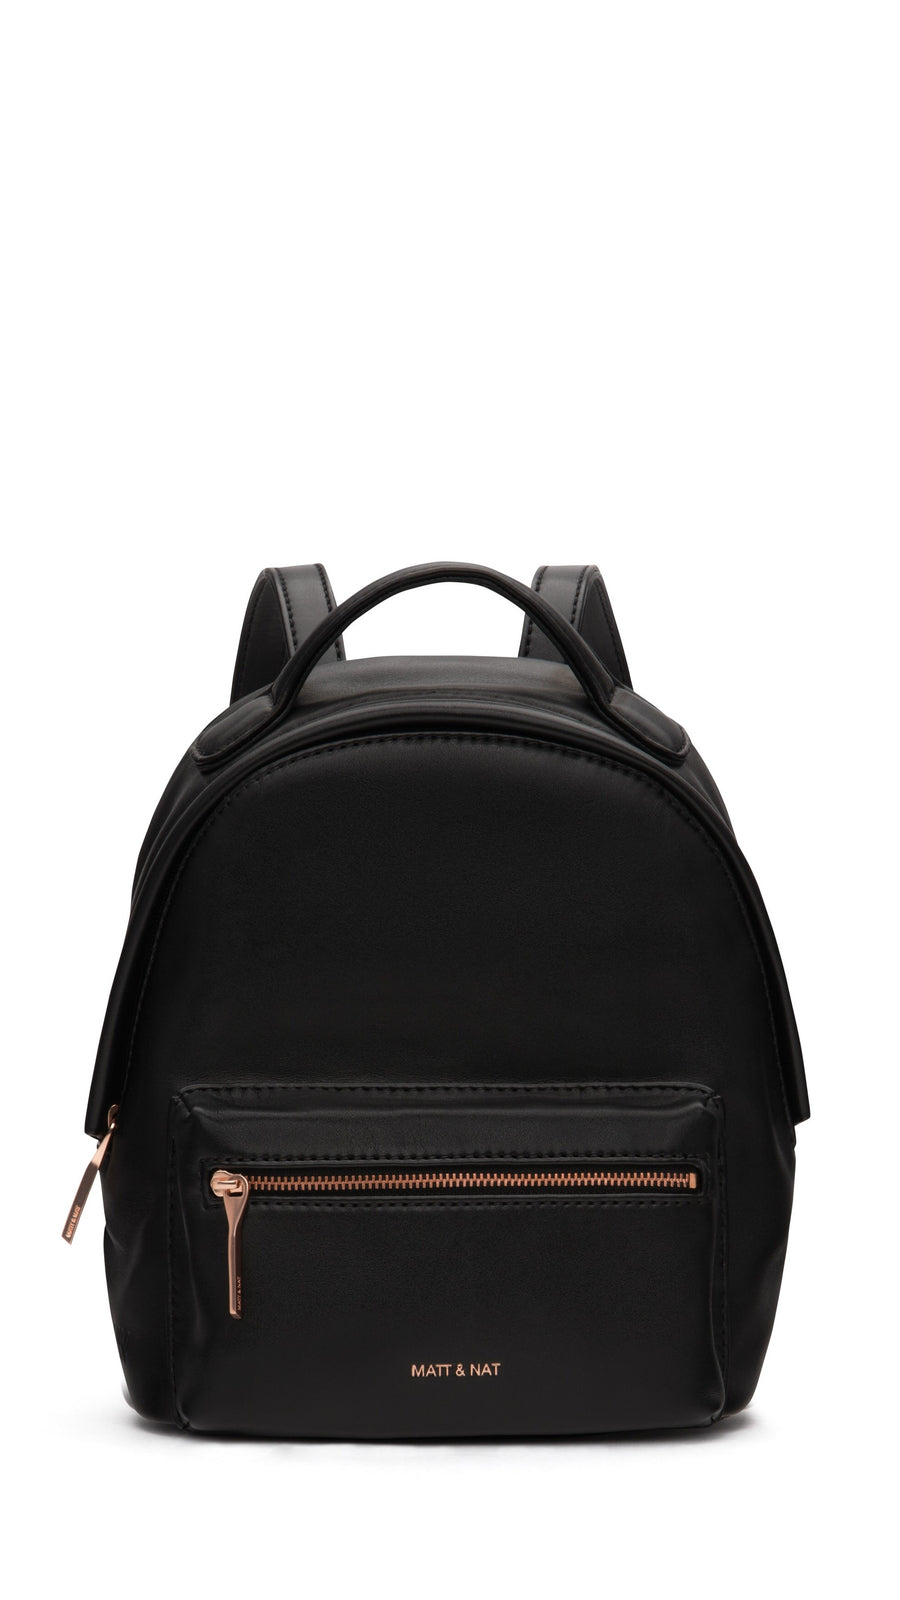 Matt & Nat BALIMINI Backpack in Black